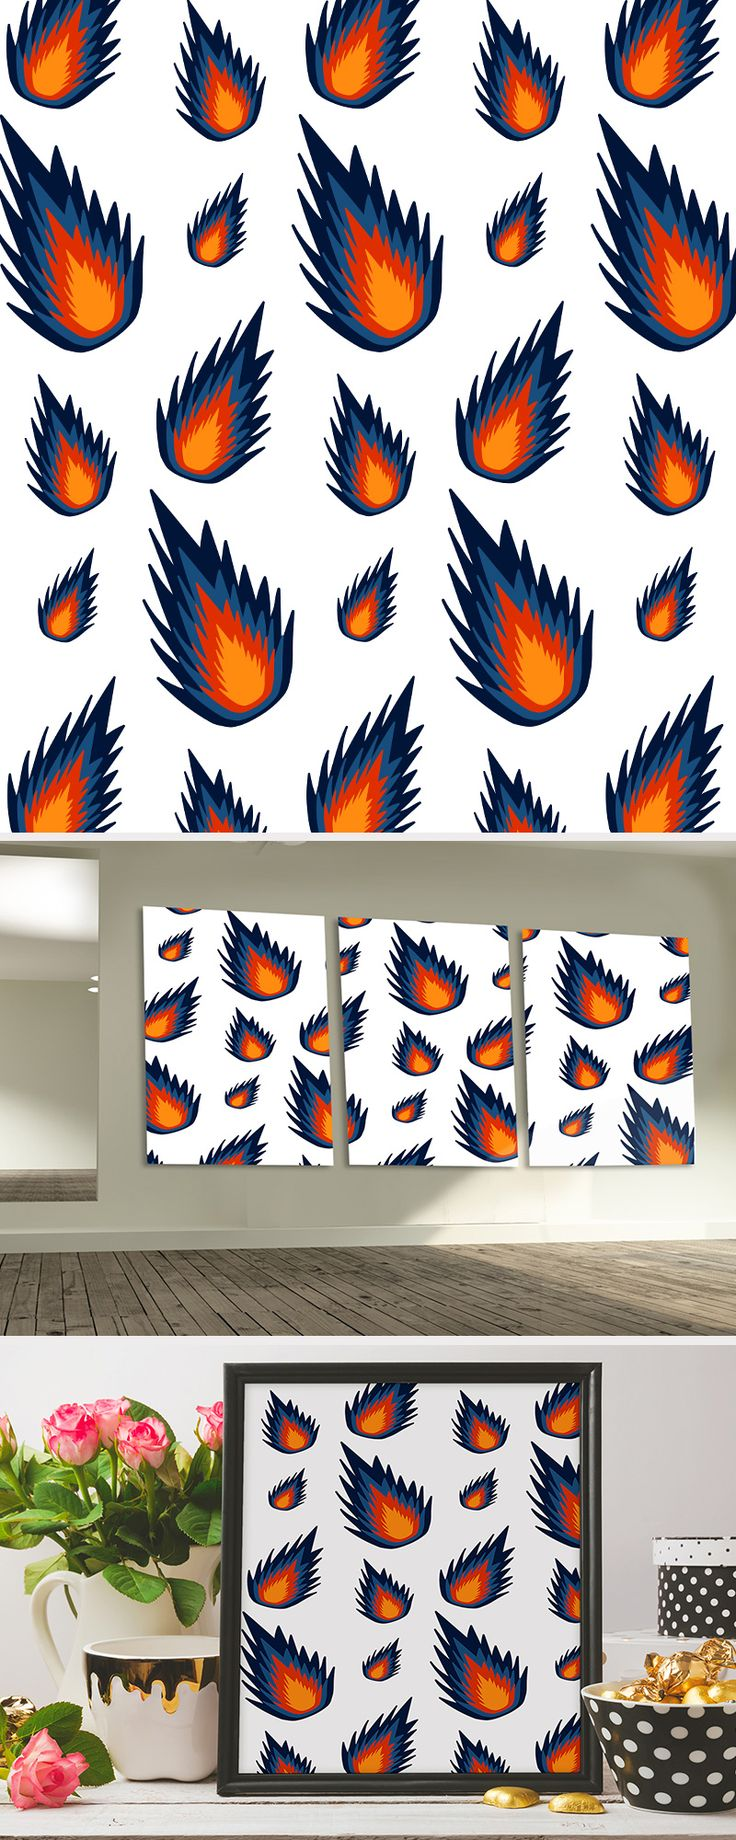 Red and blue meteor pattern used as design for home decor and wall portrait.  #pattern #vector #design #wallart #walldecor #decorideas #homedecor #inspiration #ideas #diy